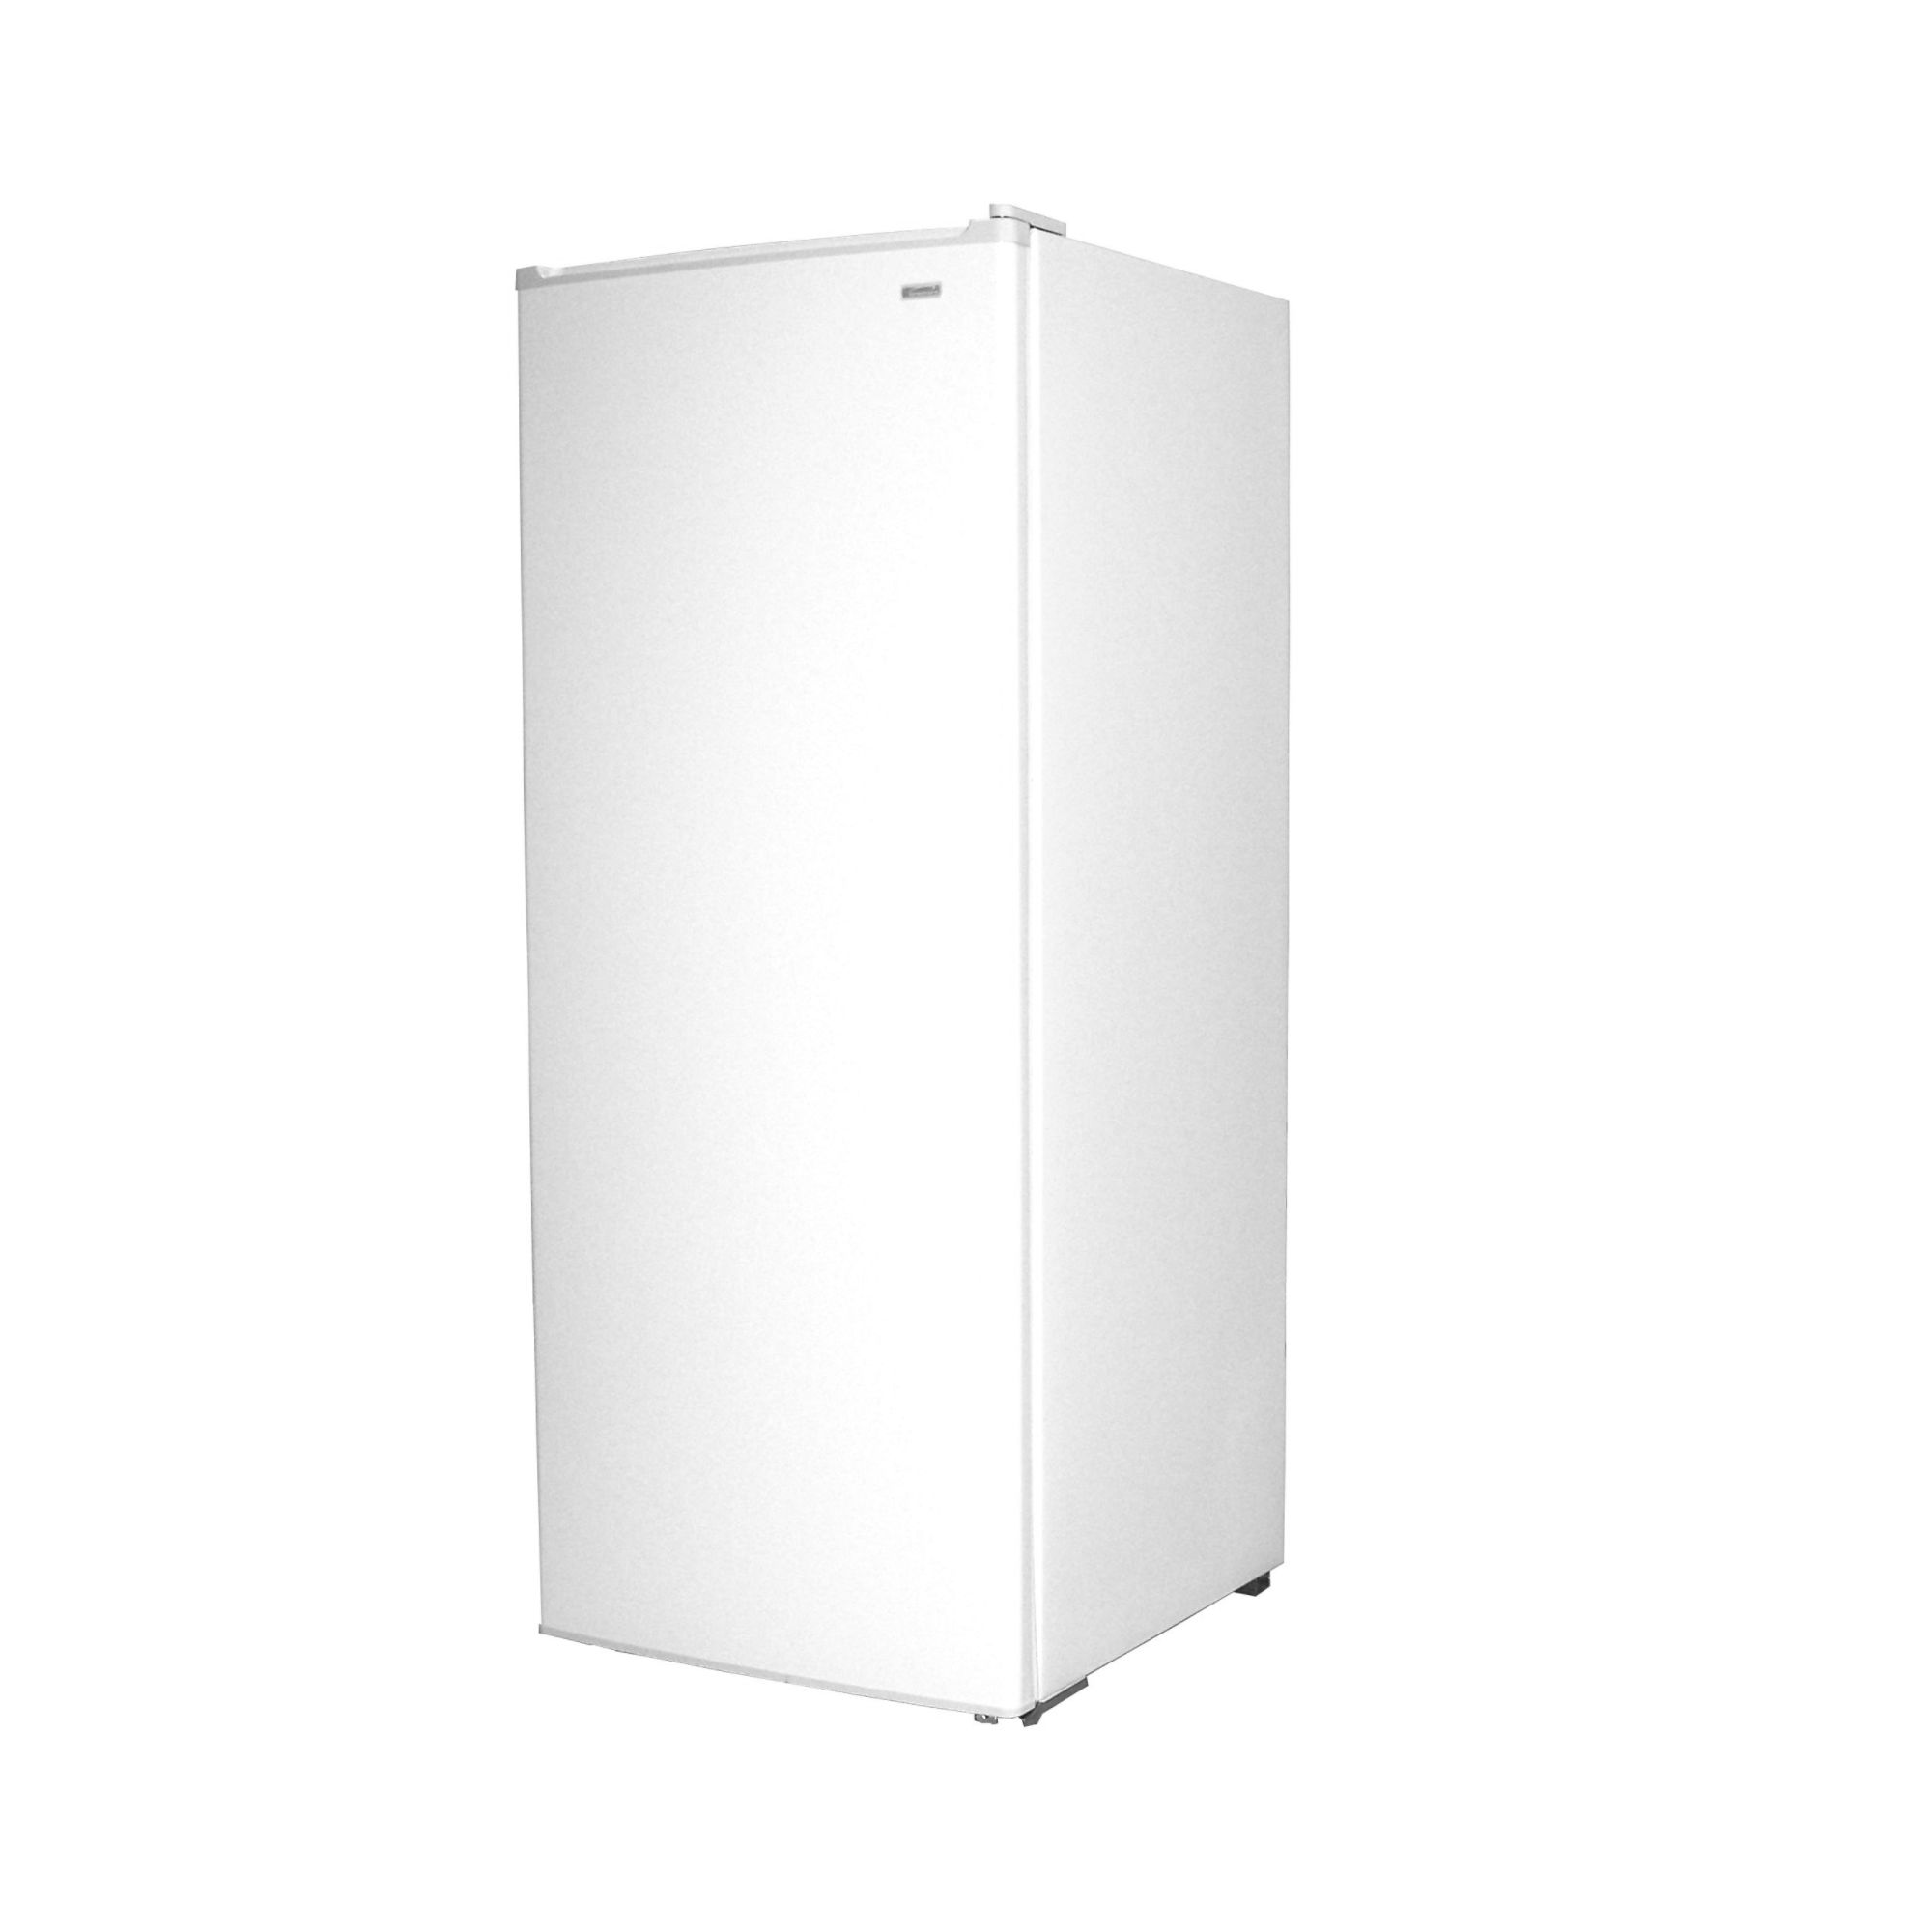 Kmart Freezer Kenmore Top Freezer Refrigerator 9 5 Cu Ft 6291 Sears